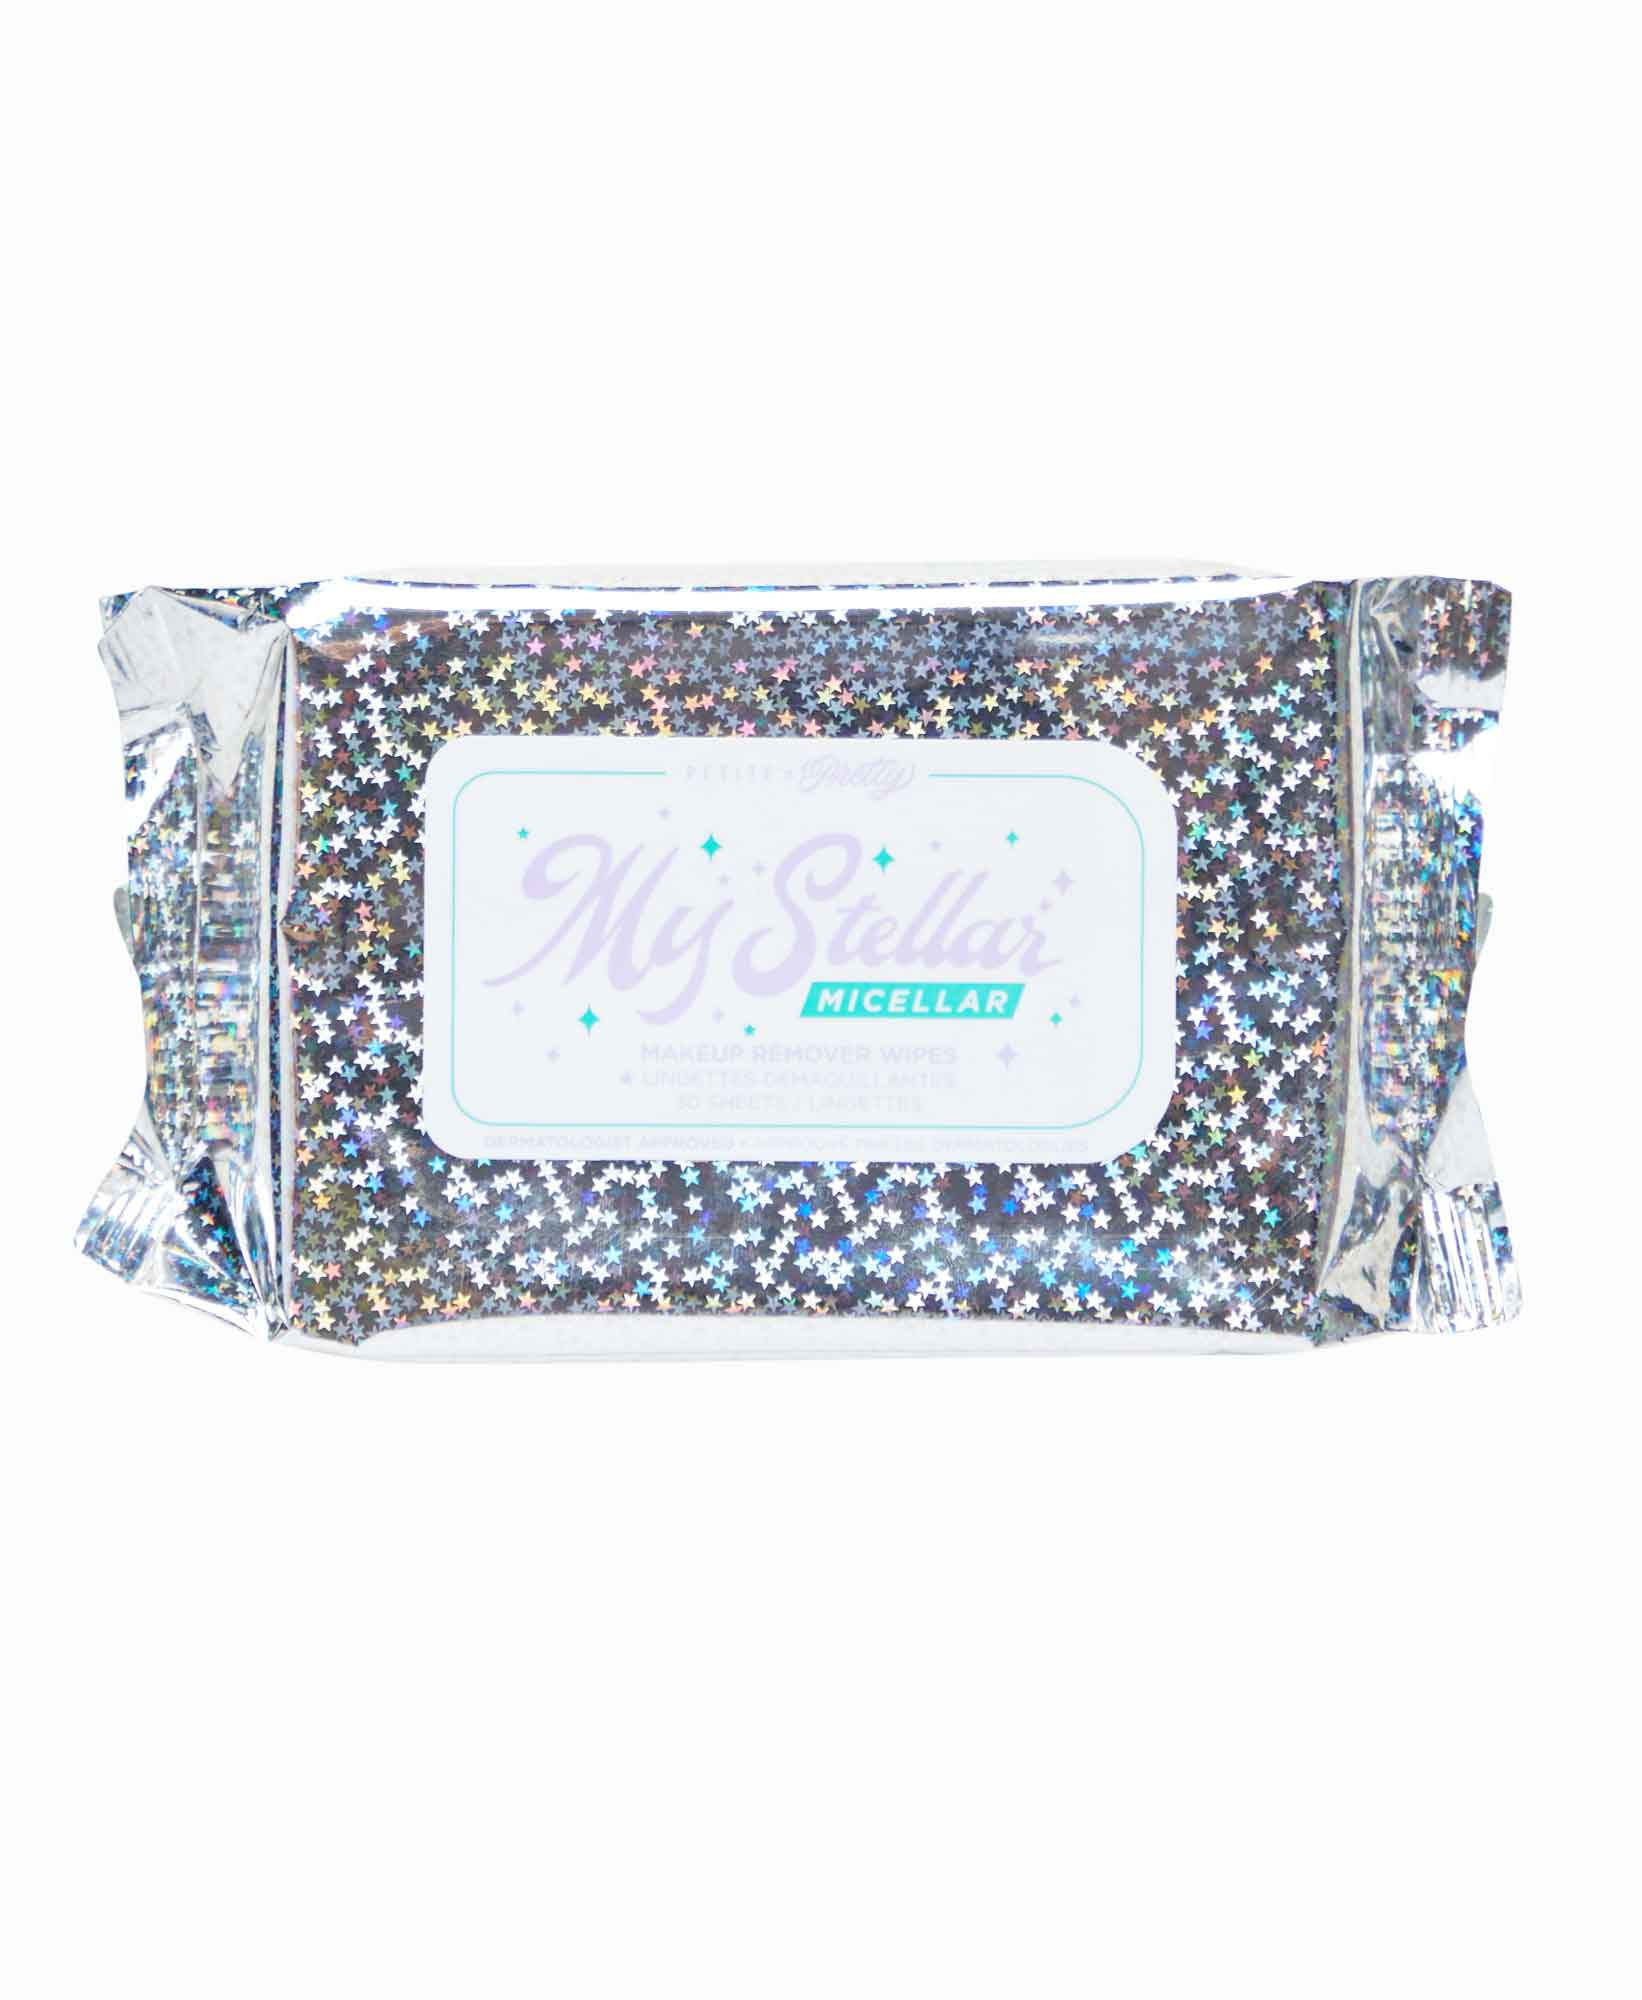 My Stellar Micellar Makeup Removere Wipes